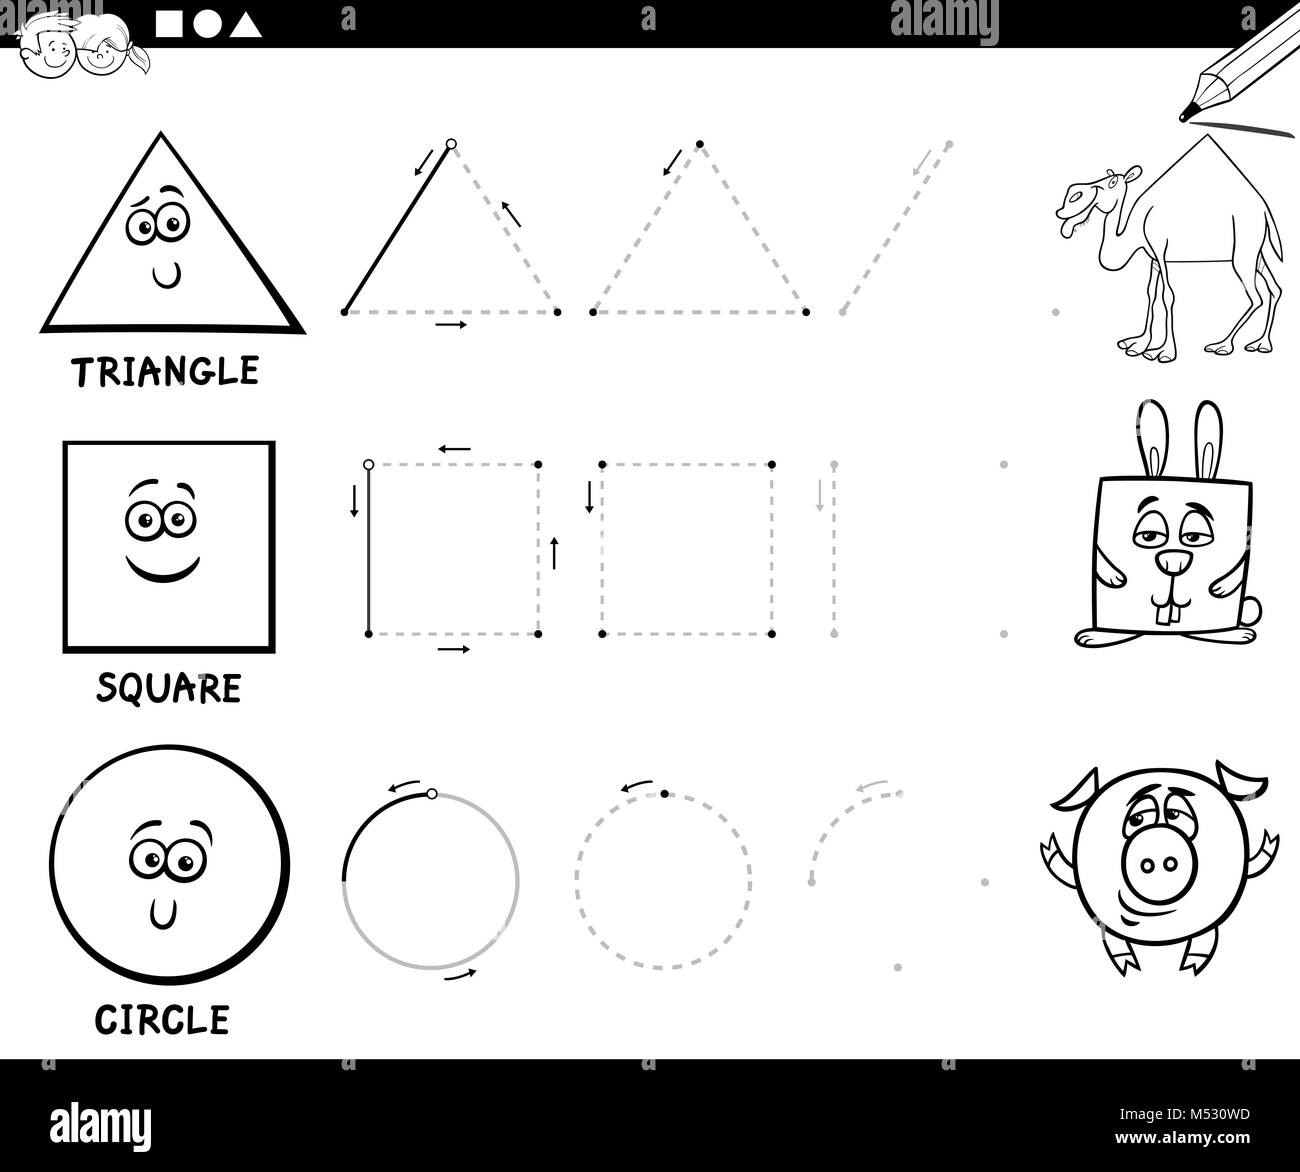 draw basic geometric shapes coloring page Stock Photo: 175243529 - Alamy